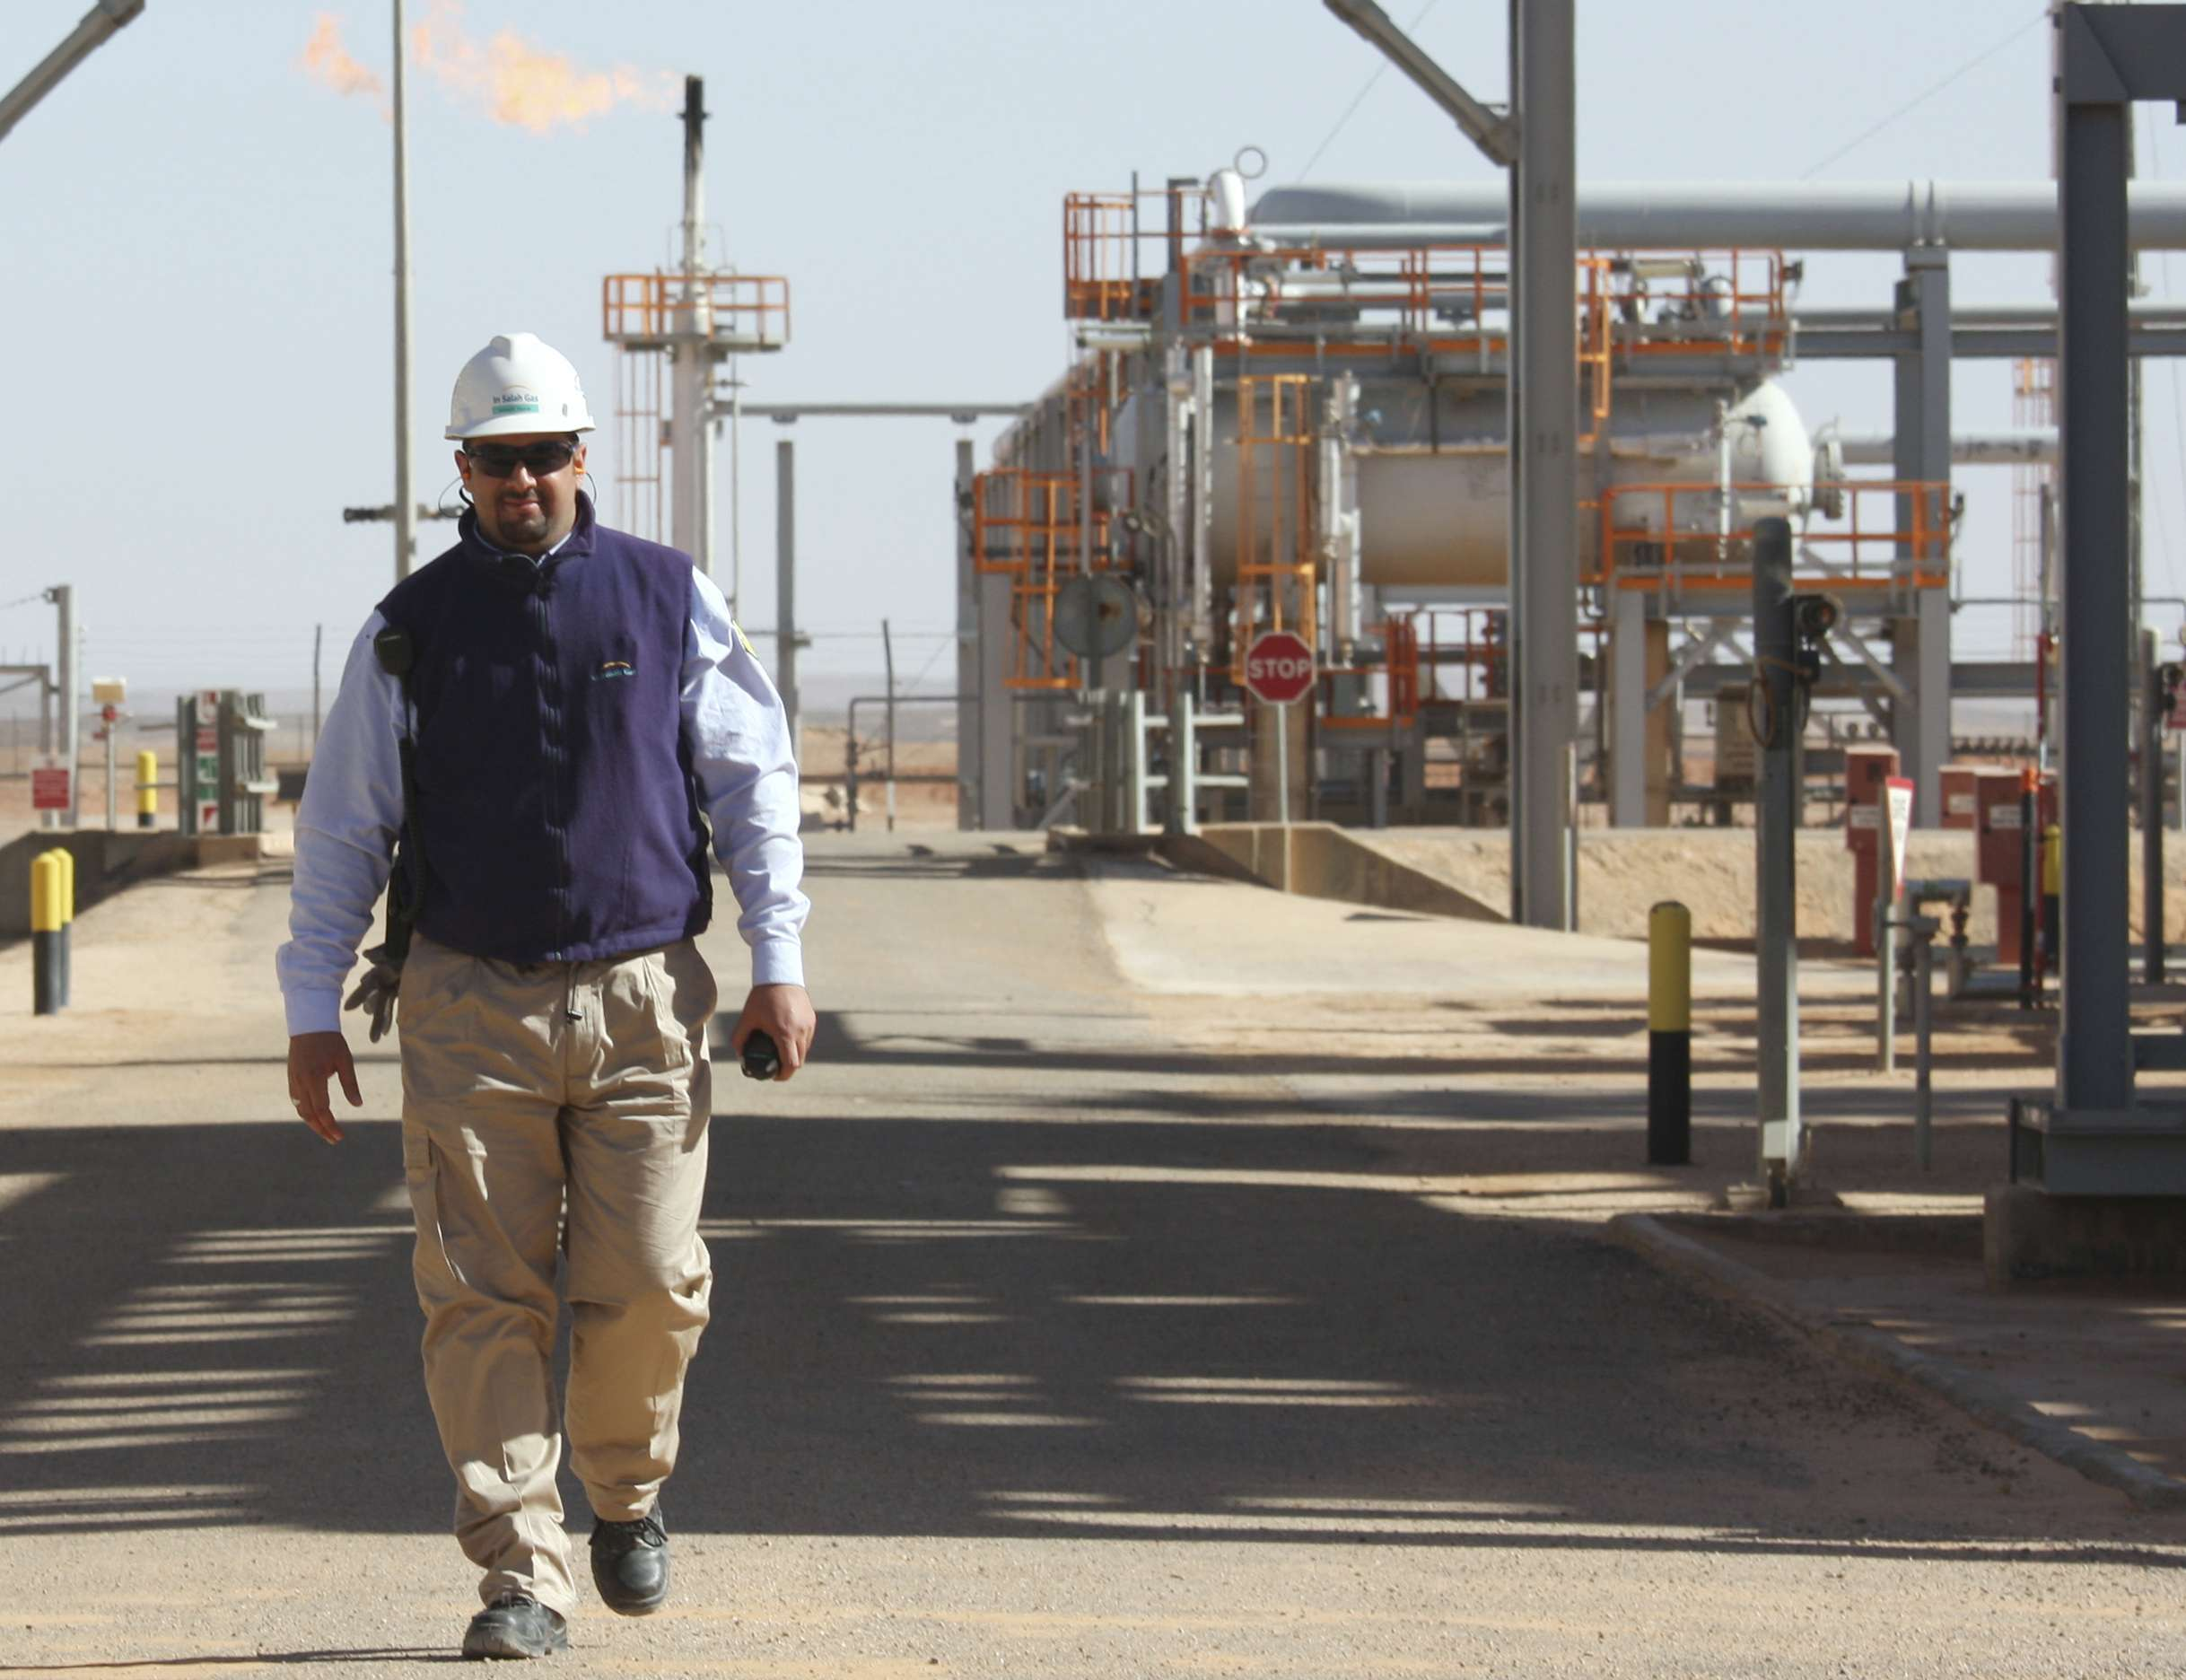 Key sector. A worker inspects the Krechba gas plant in Algeria's Sahara Desert, south of the capital Algiers. (AP)